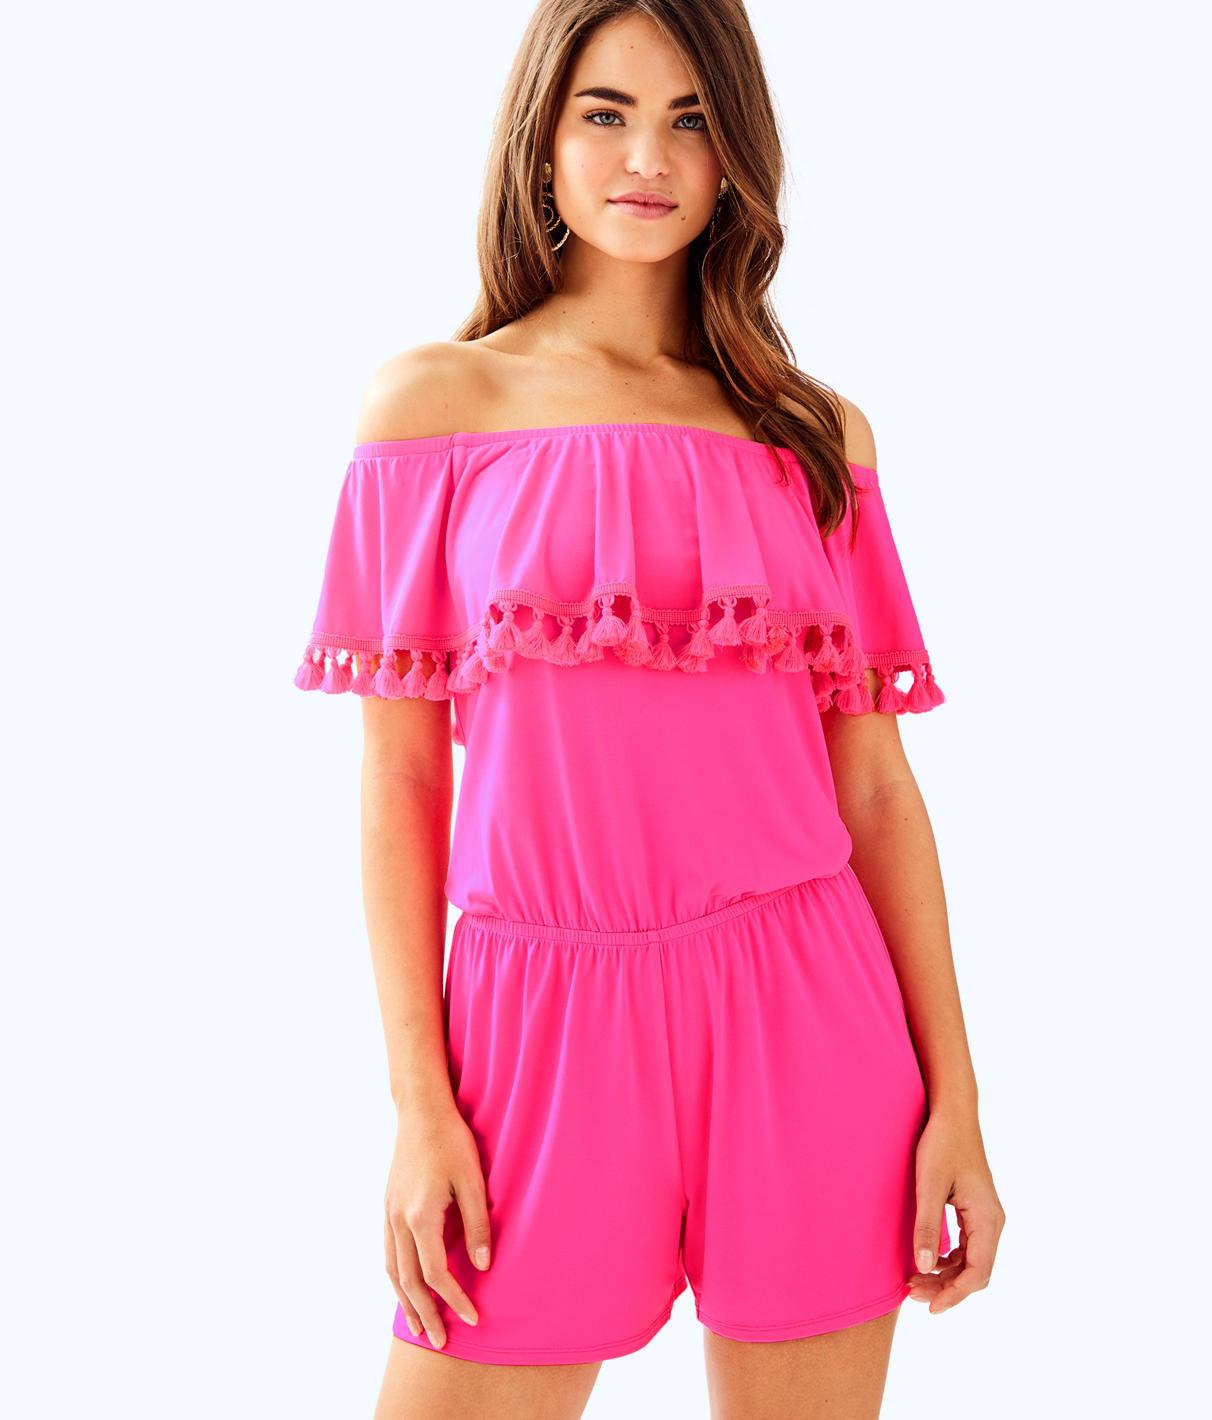 ceb03aff2c890 Lilly Pulitzer La Fortuna Off The Shoulder Romper In Pink Cosmo ...